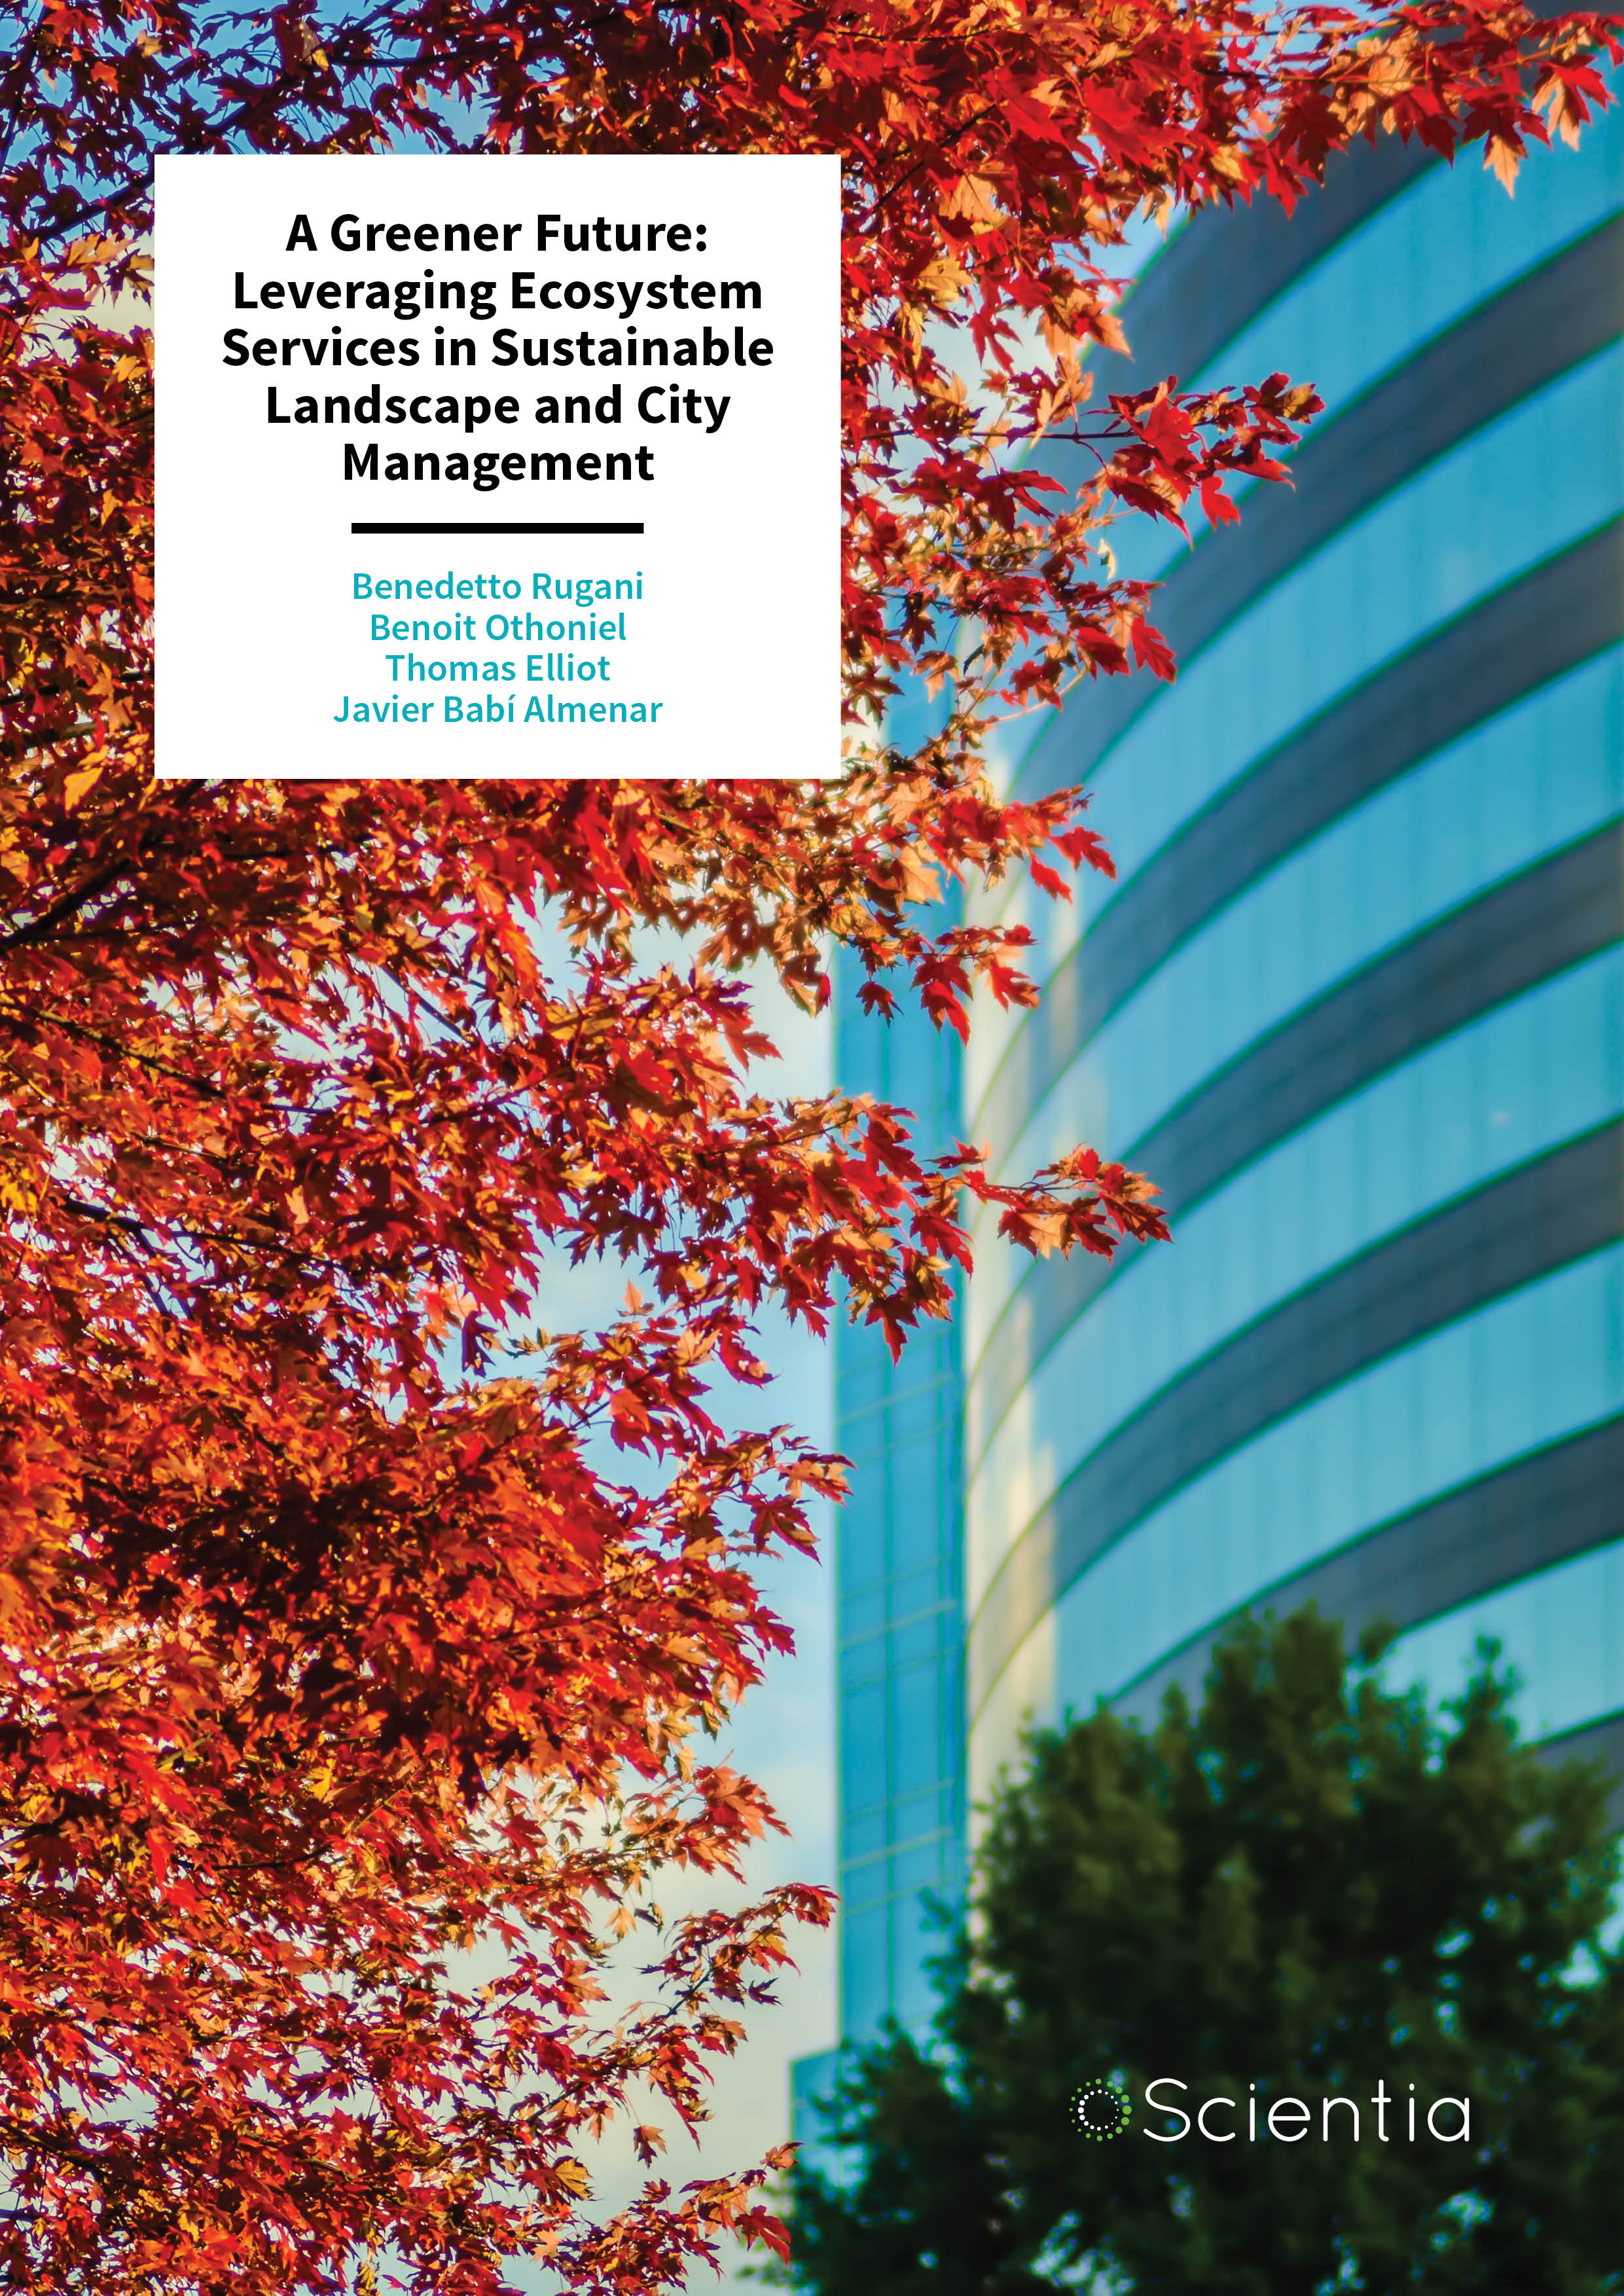 Dr Benedetto Rugani – A Greener Future: Leveraging Ecosystem Services in Sustainable Landscape and City Management